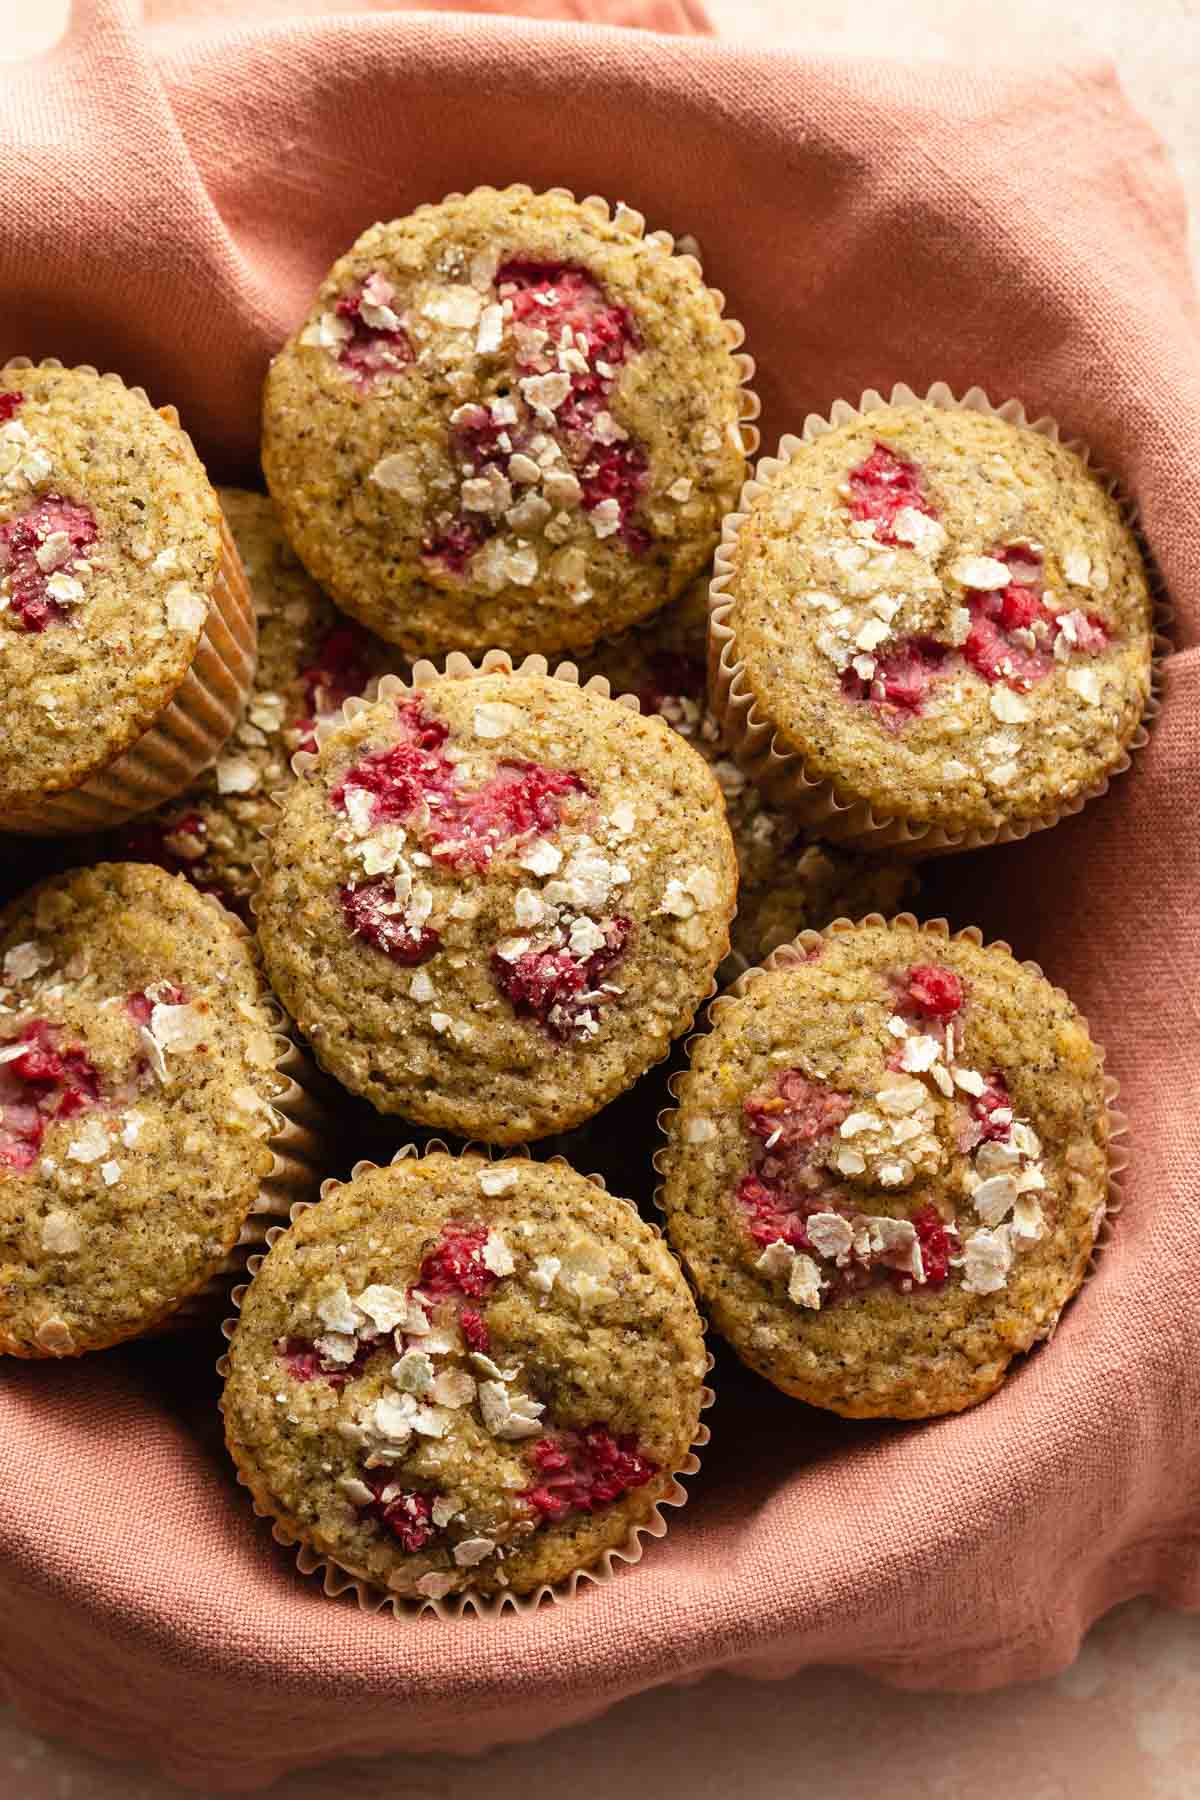 Overhead view of raspberry muffins in a basket lined with a pink napkin.